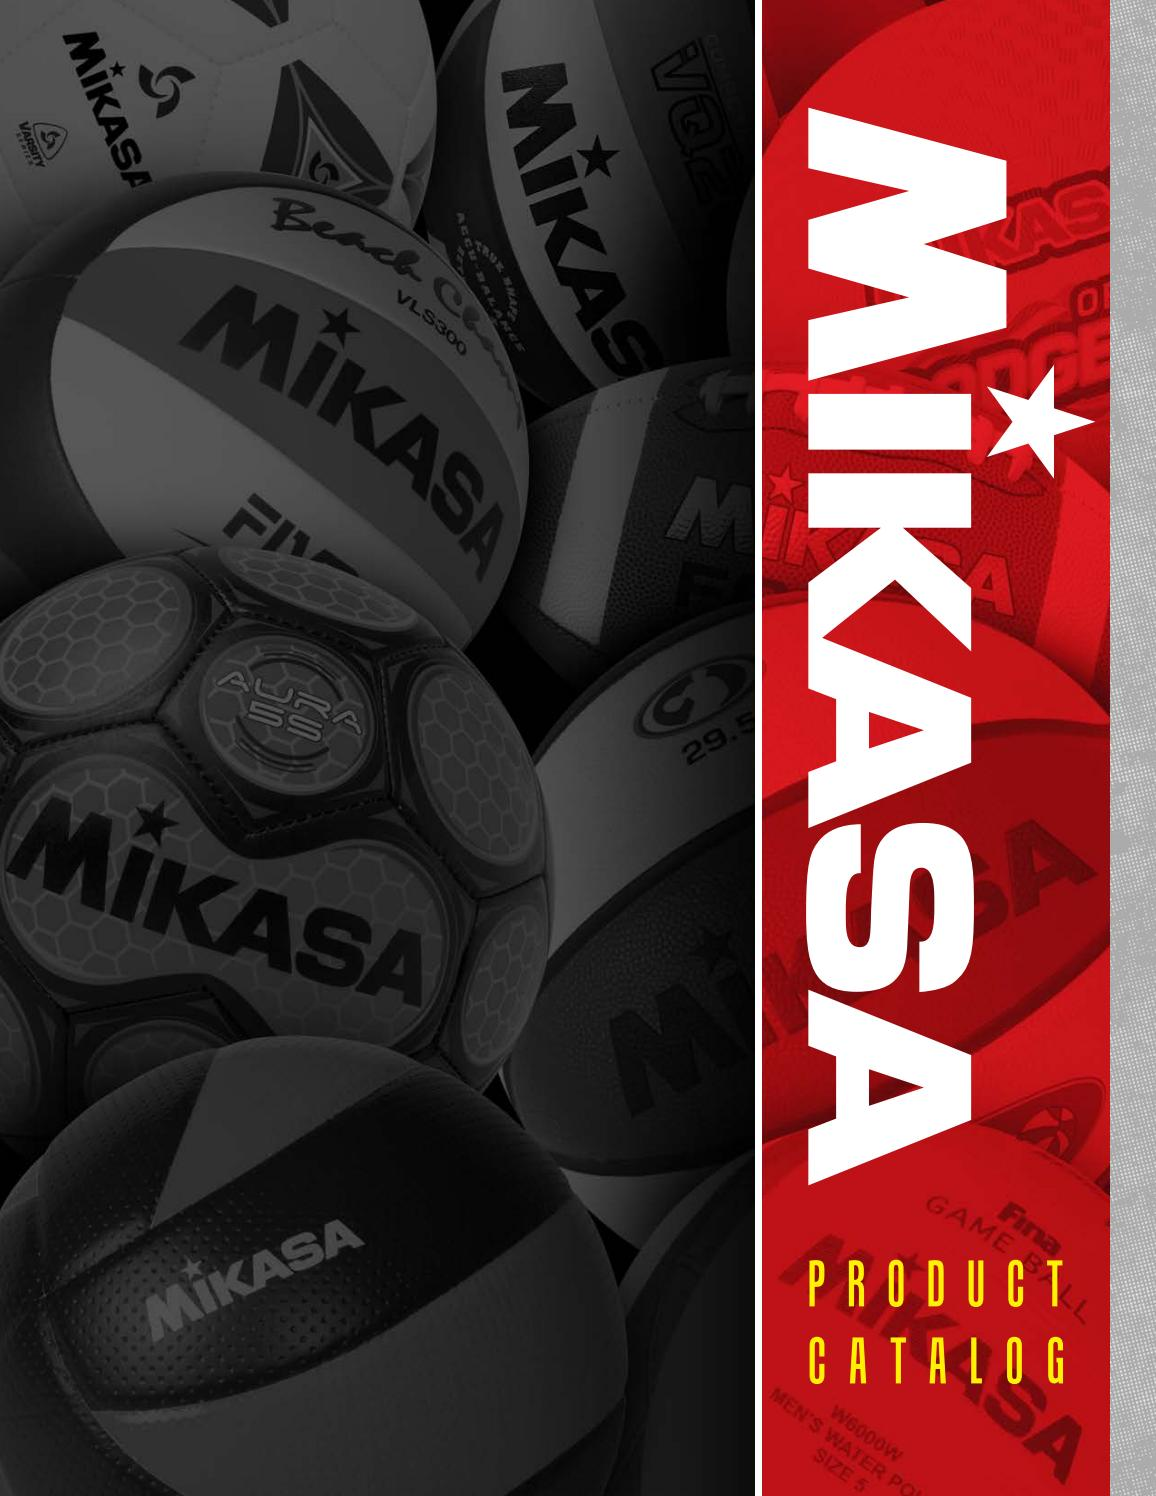 RED BLACK Mikasa Indoor Volleyball Red//White//Black Mikasa Sports USA VIP300-CAN